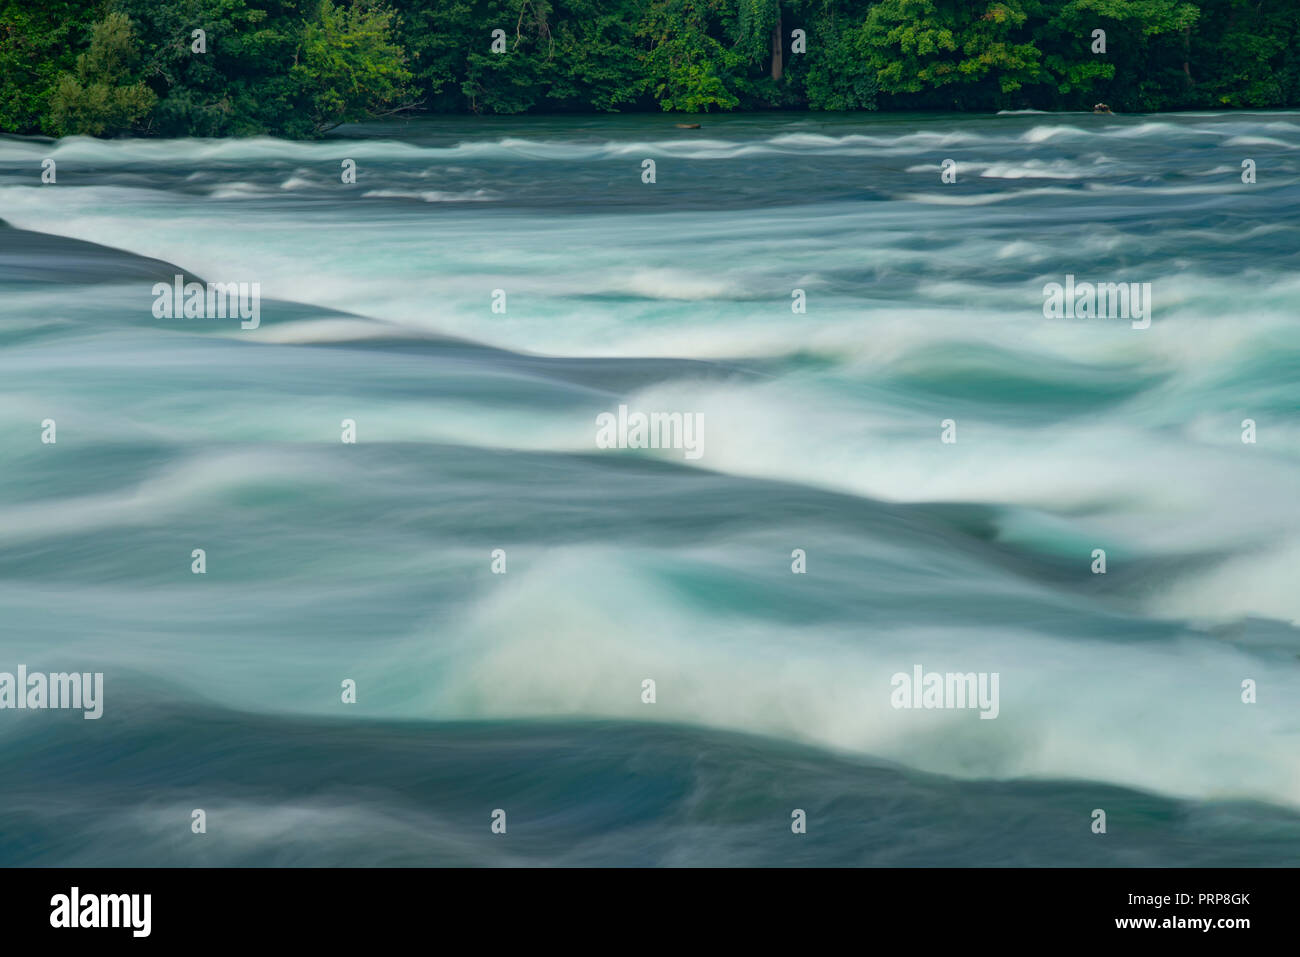 Flowing Water Motion Blur, St. Lawrence River - Stock Image